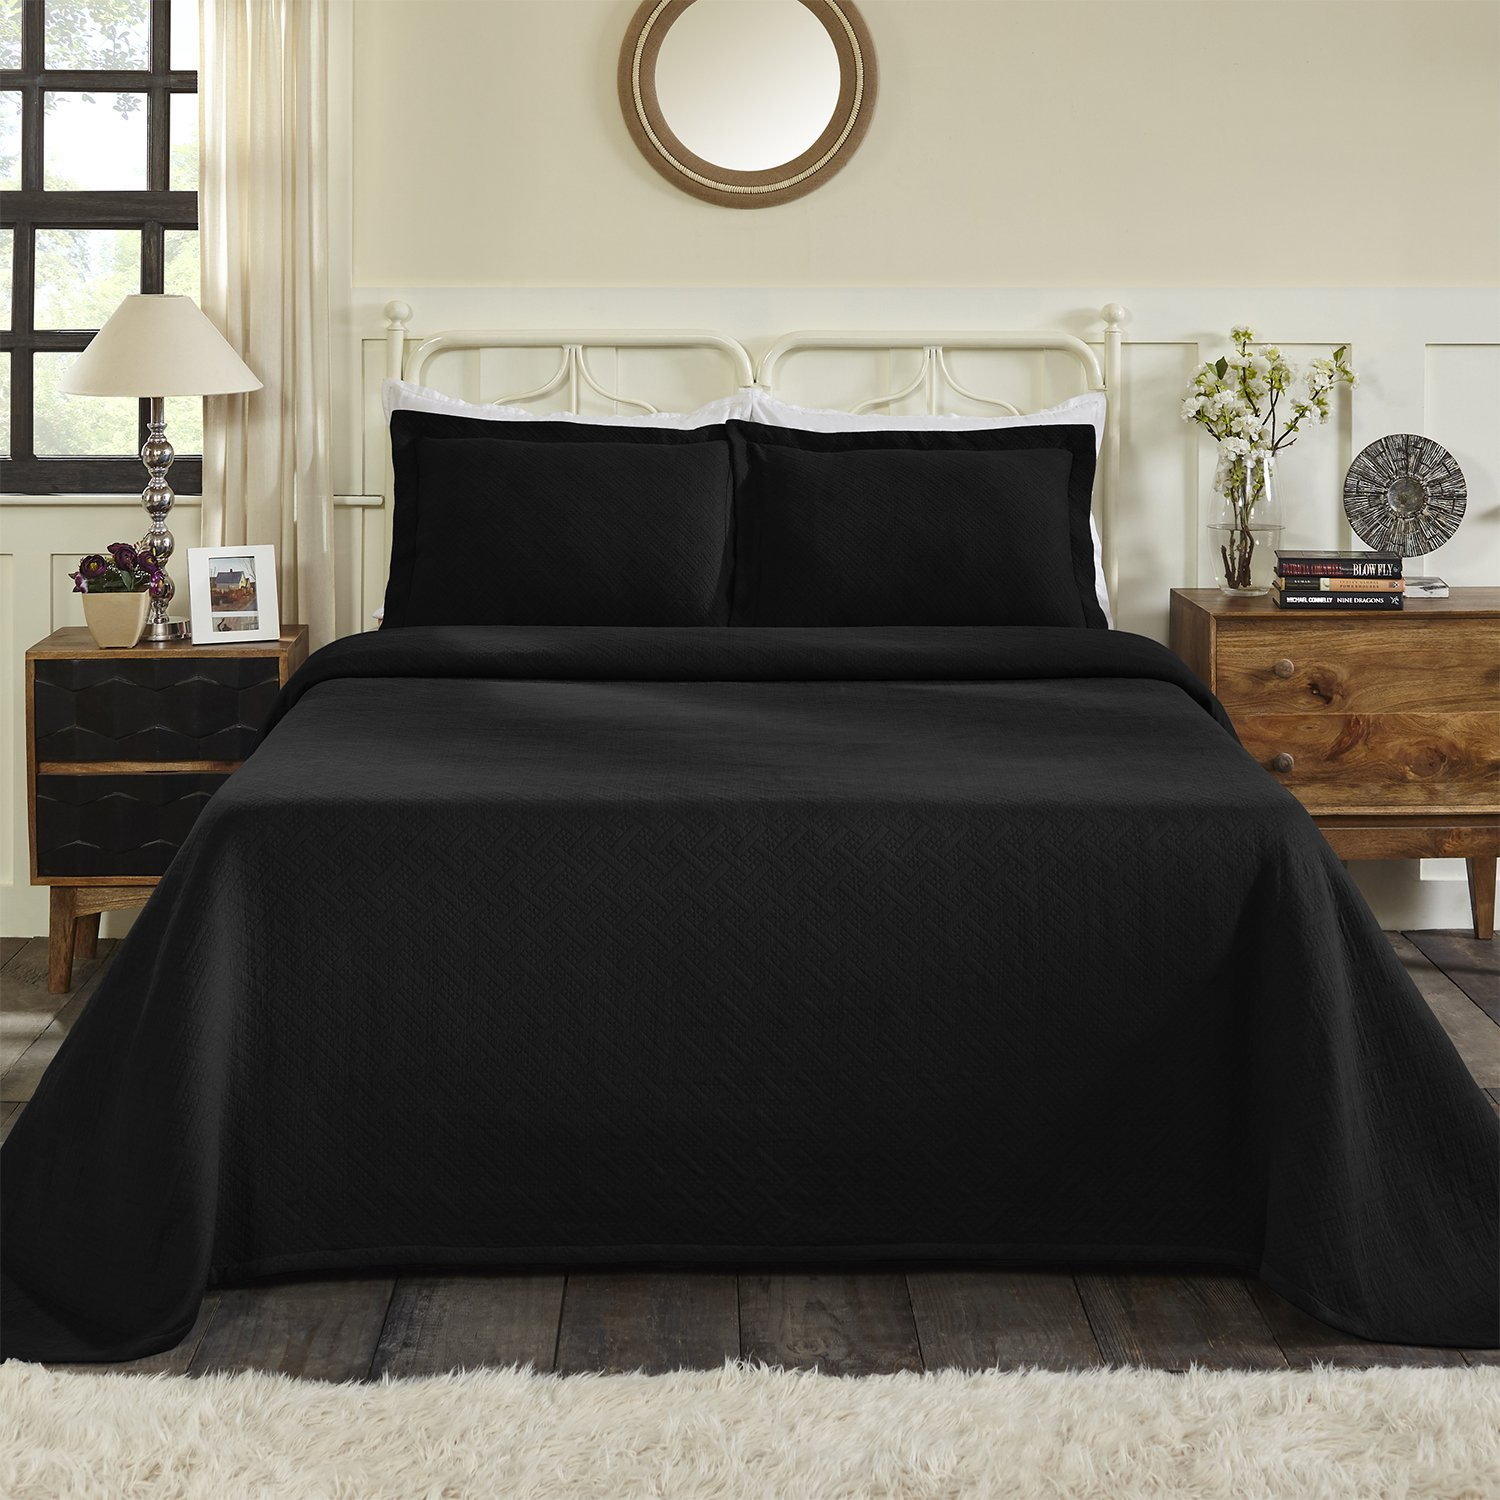 Blue Nile Mills 100% Cotton Basket Matelasse King Bedspread, Black